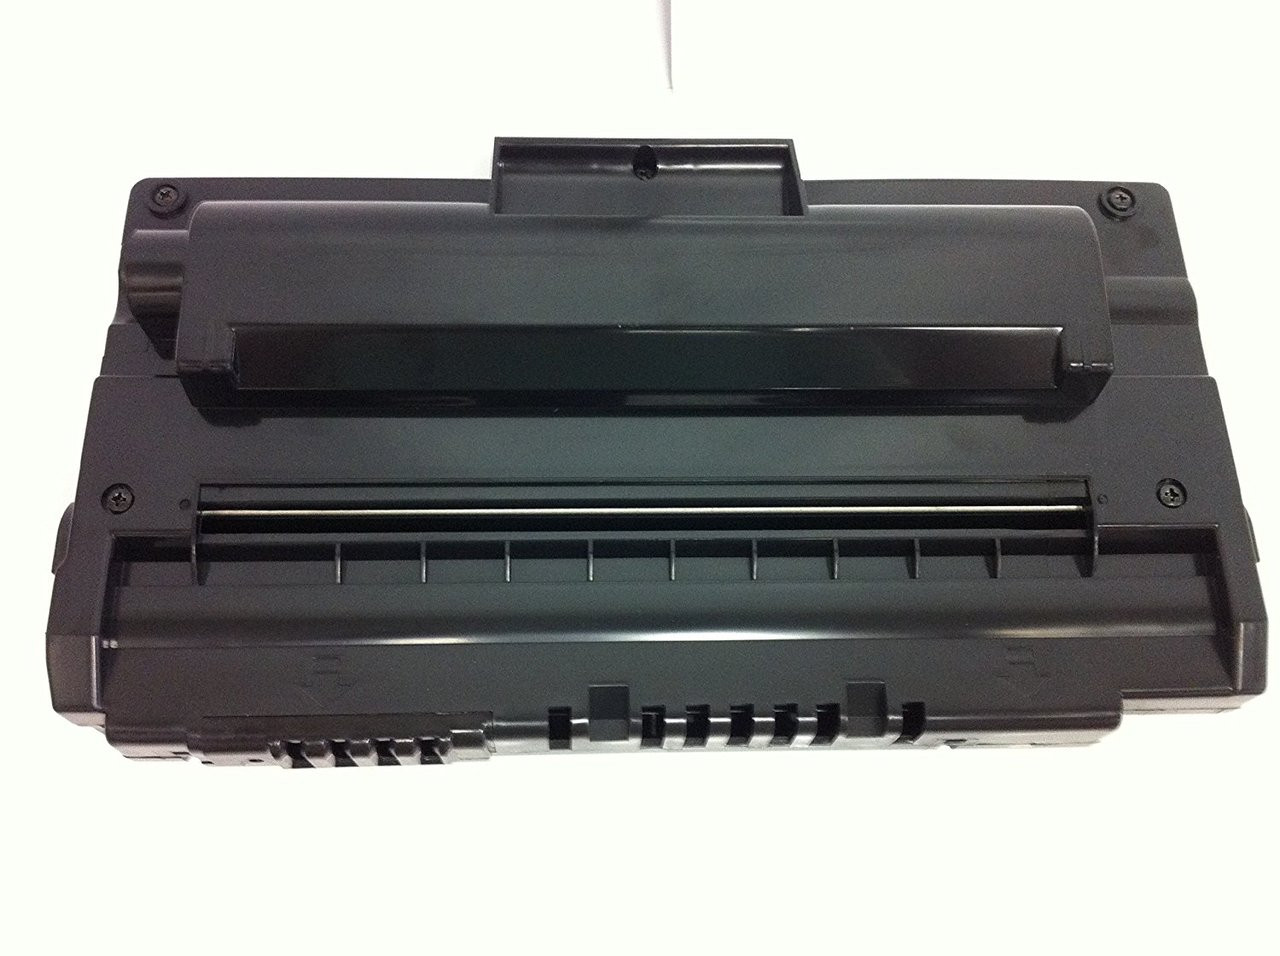 DELL PRINTER 1600N DRIVERS UPDATE